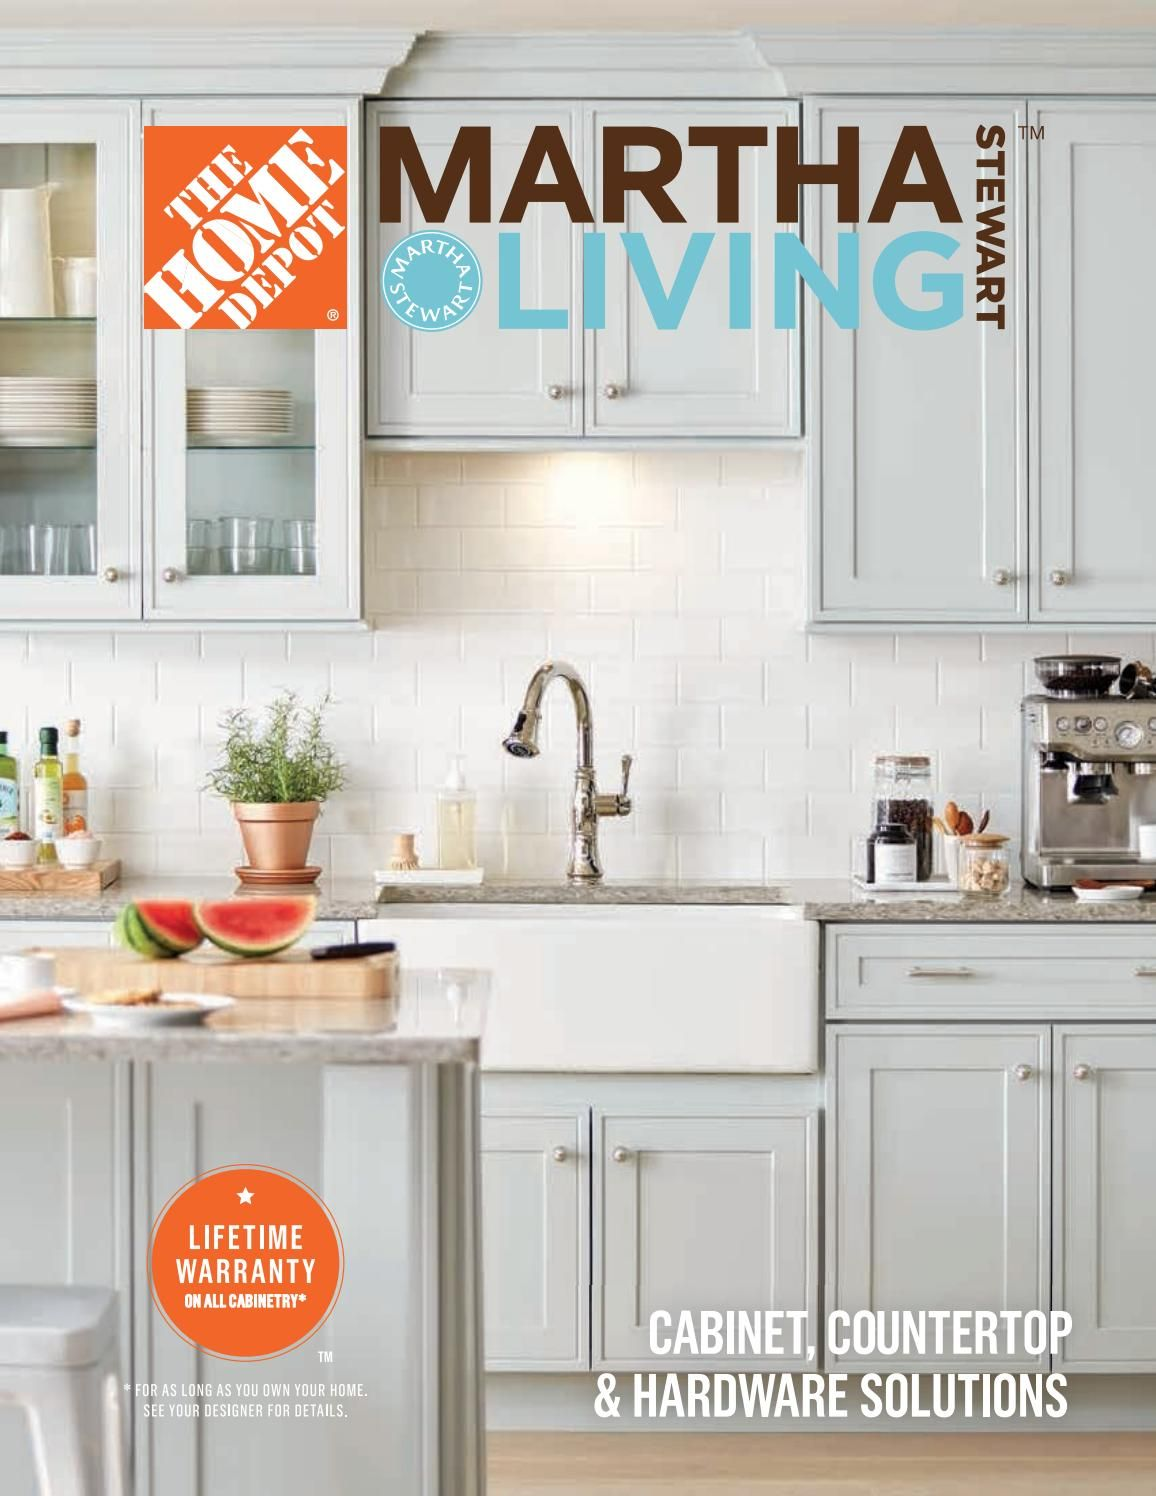 Martha Stewart Living, at The Home Depot